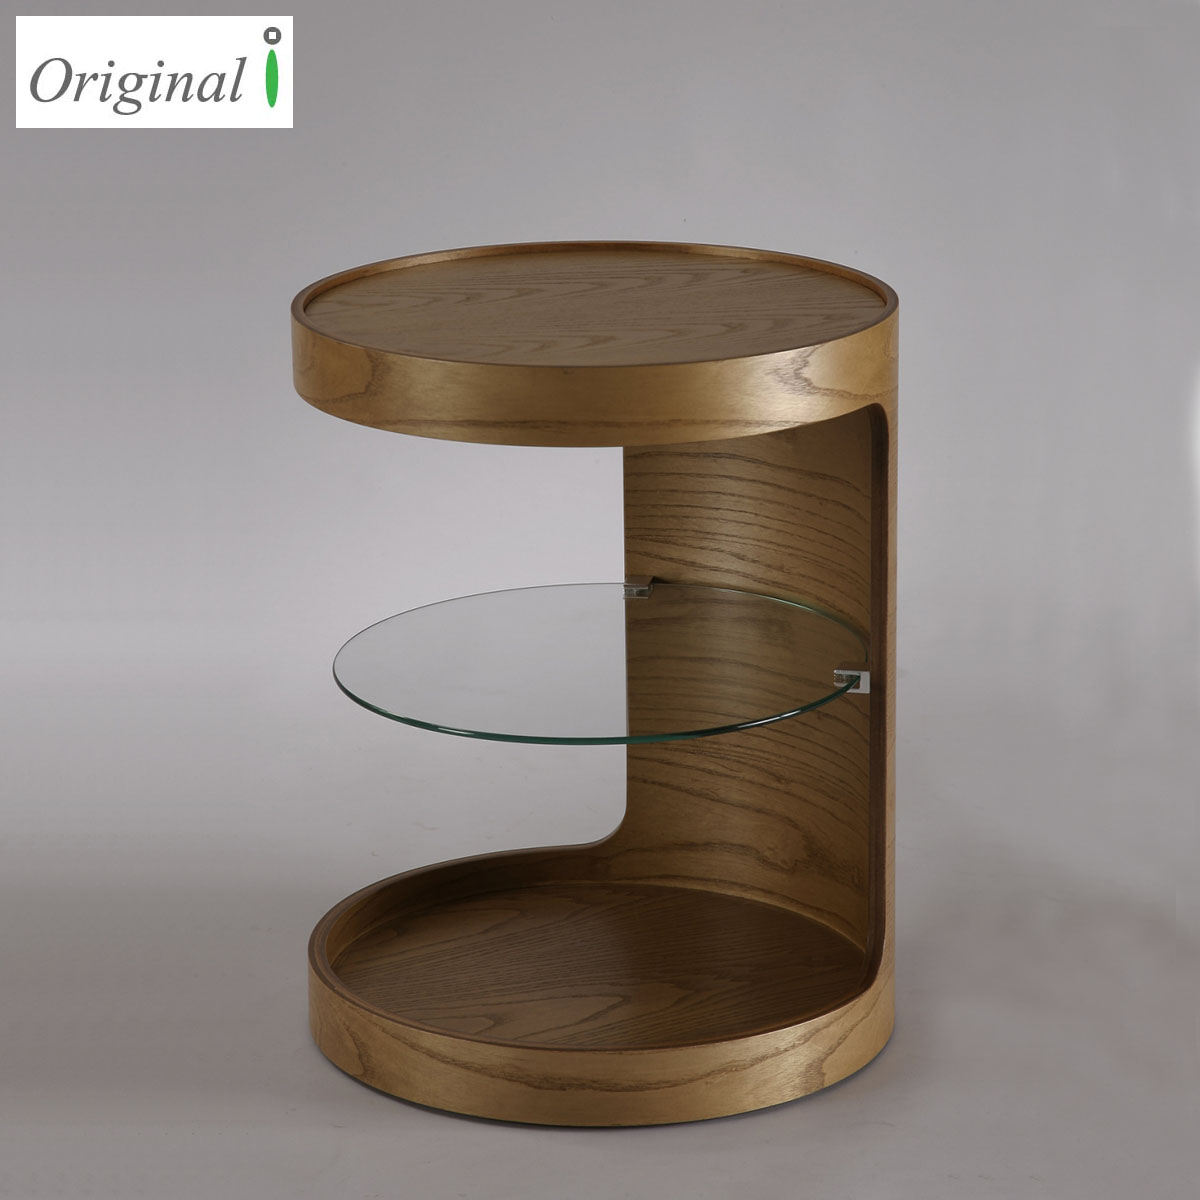 Design Round Wood Veneer Side Table with Tempered Glass and casters